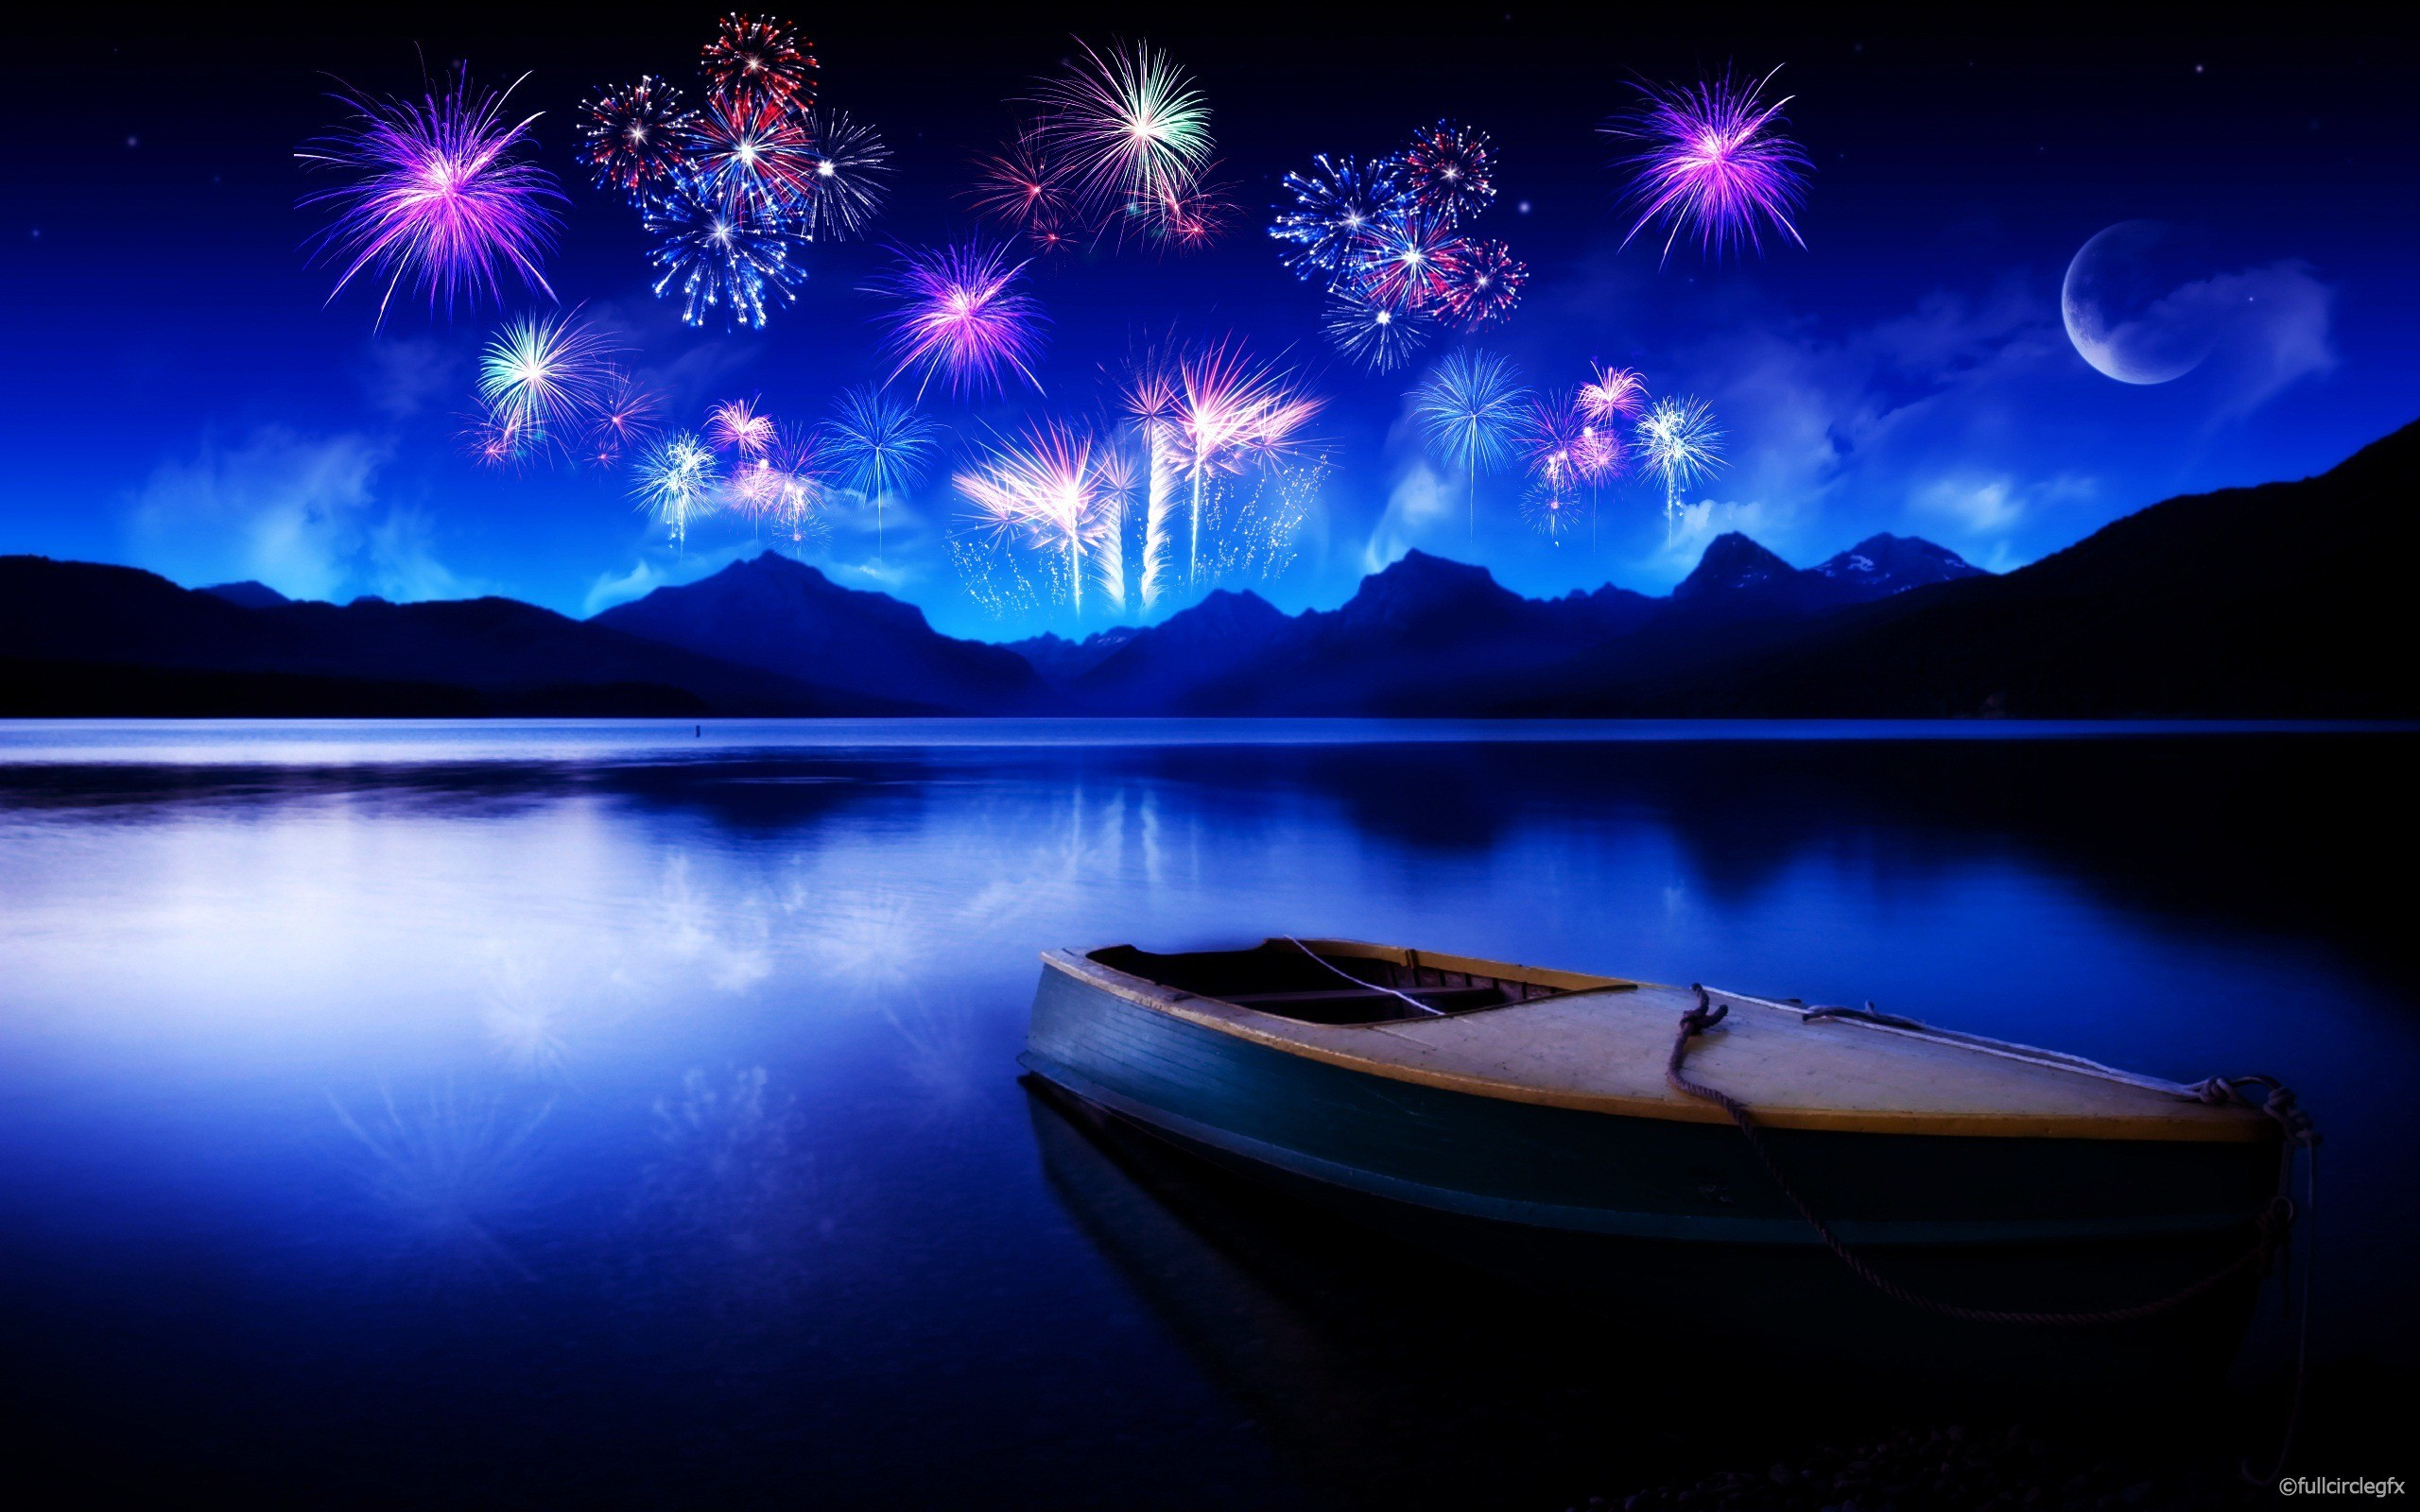 2560x1600 Best computer wallpapers 2012 – bestscreenwallpaper.com – fireworks to lake